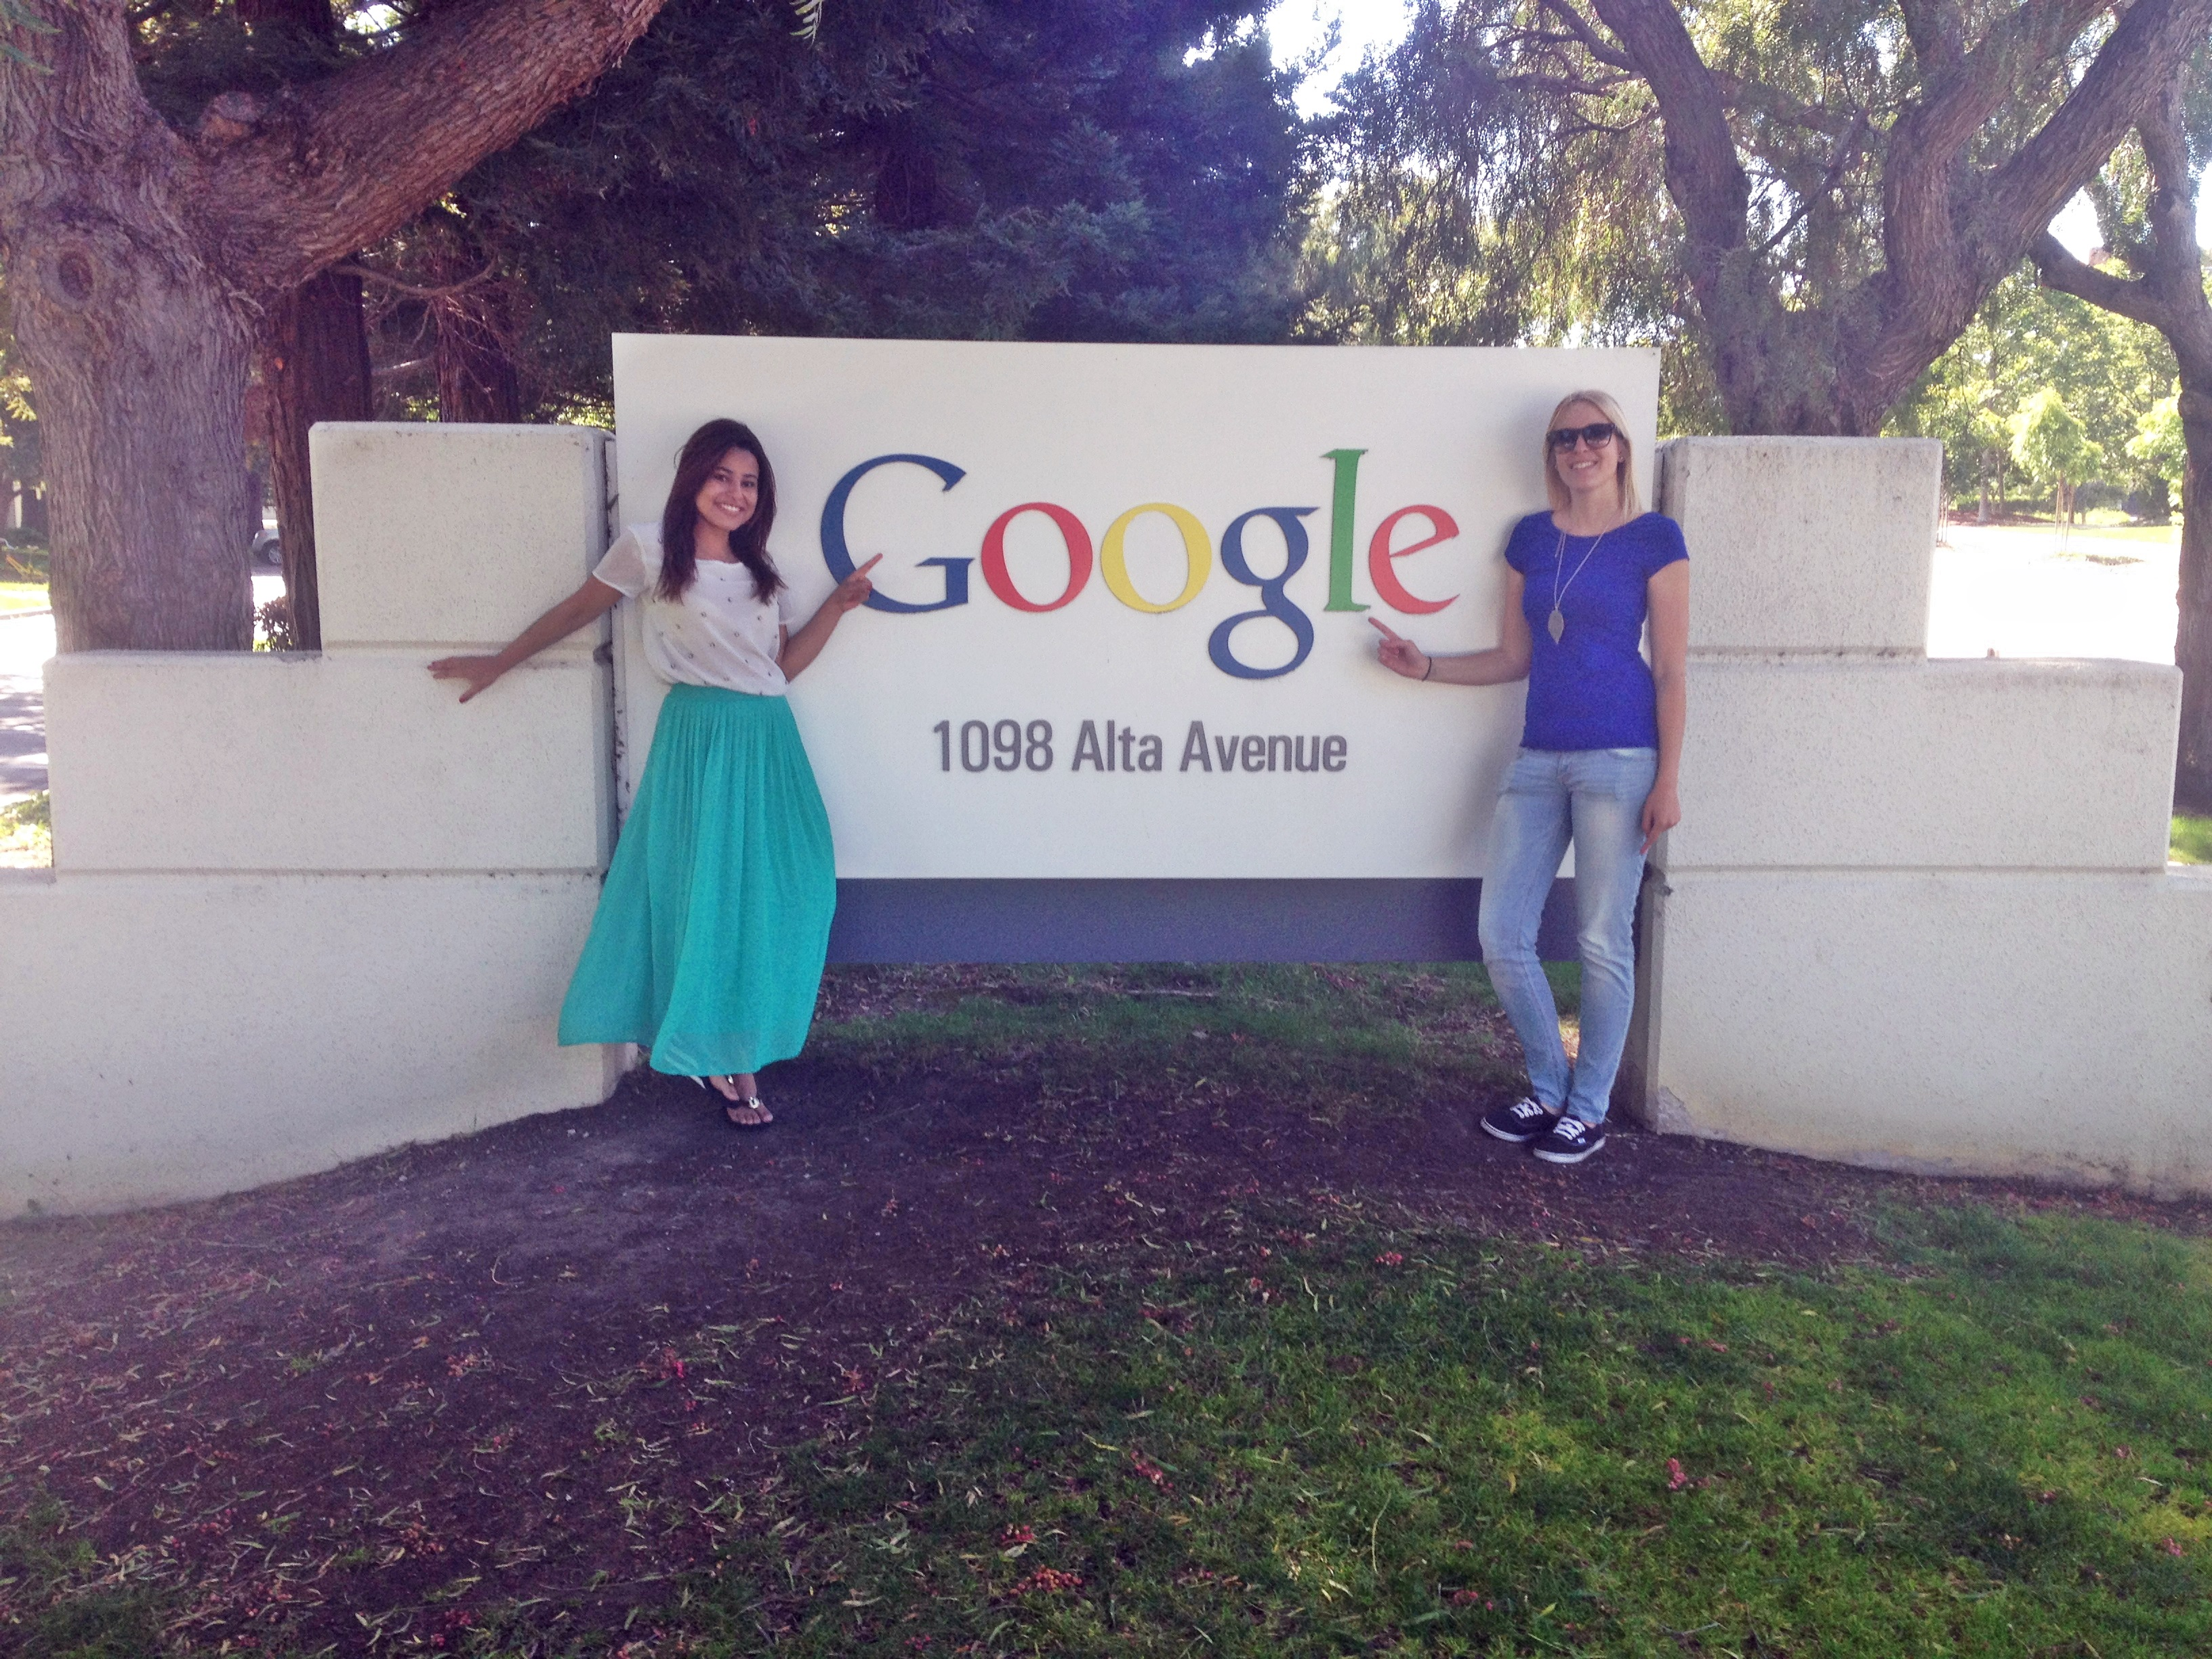 California: passeio na sede do Google no Vale do Silício